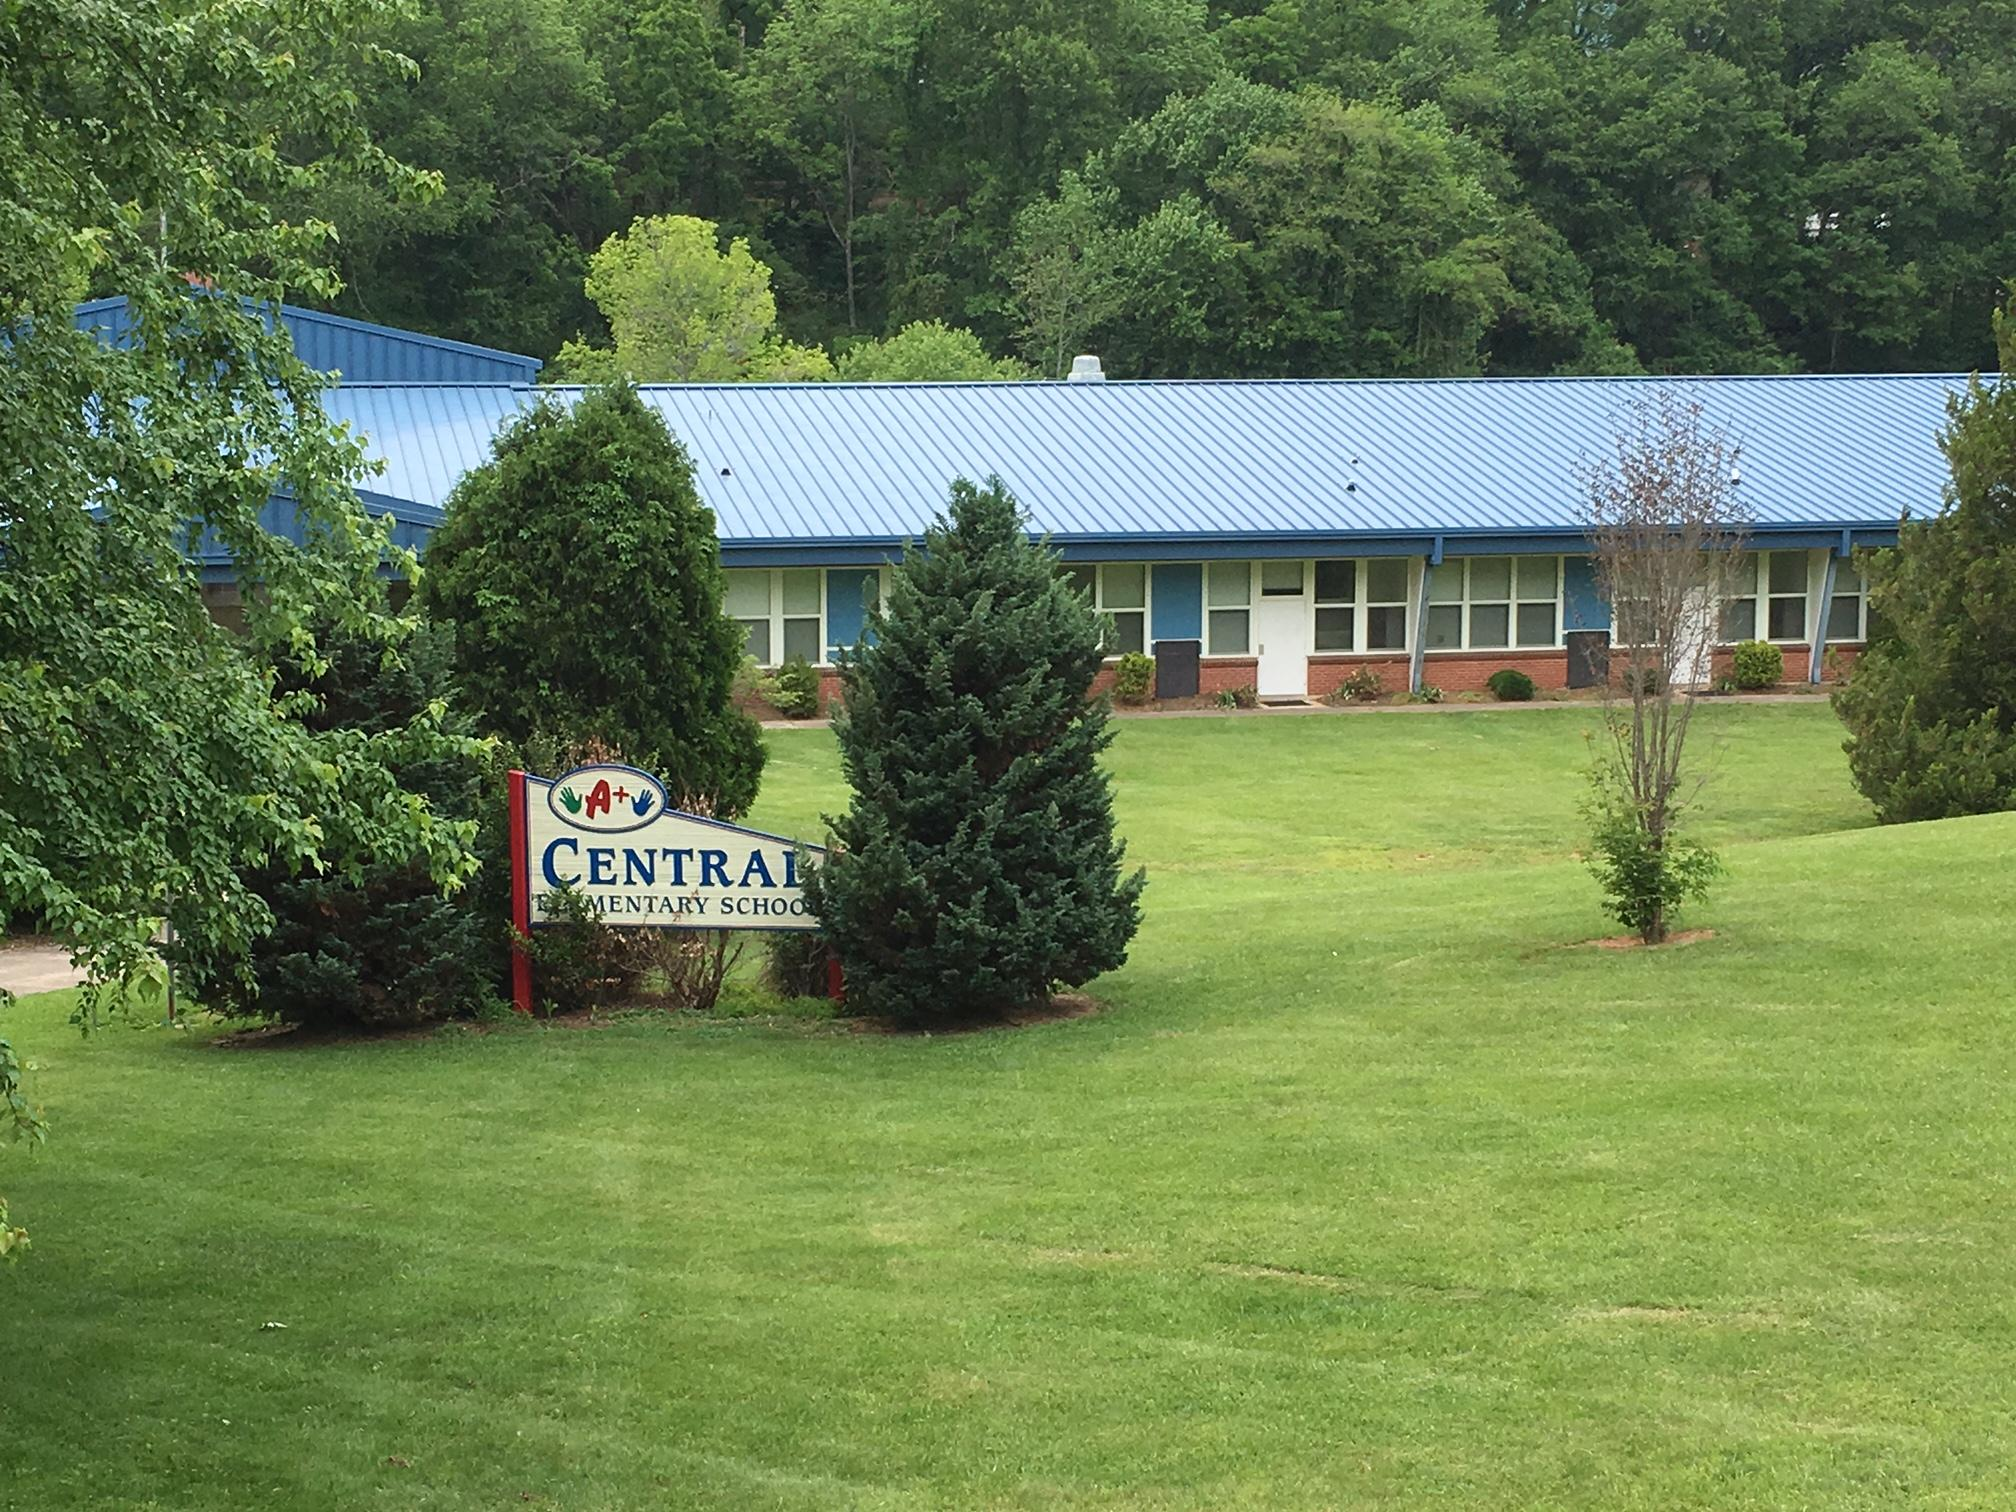 Haywood County School leaders put Central Elementary on the surplus list last year. But now county commissioners want the school board to remove it from the surplus list. (Photo credit: WLOS staff)